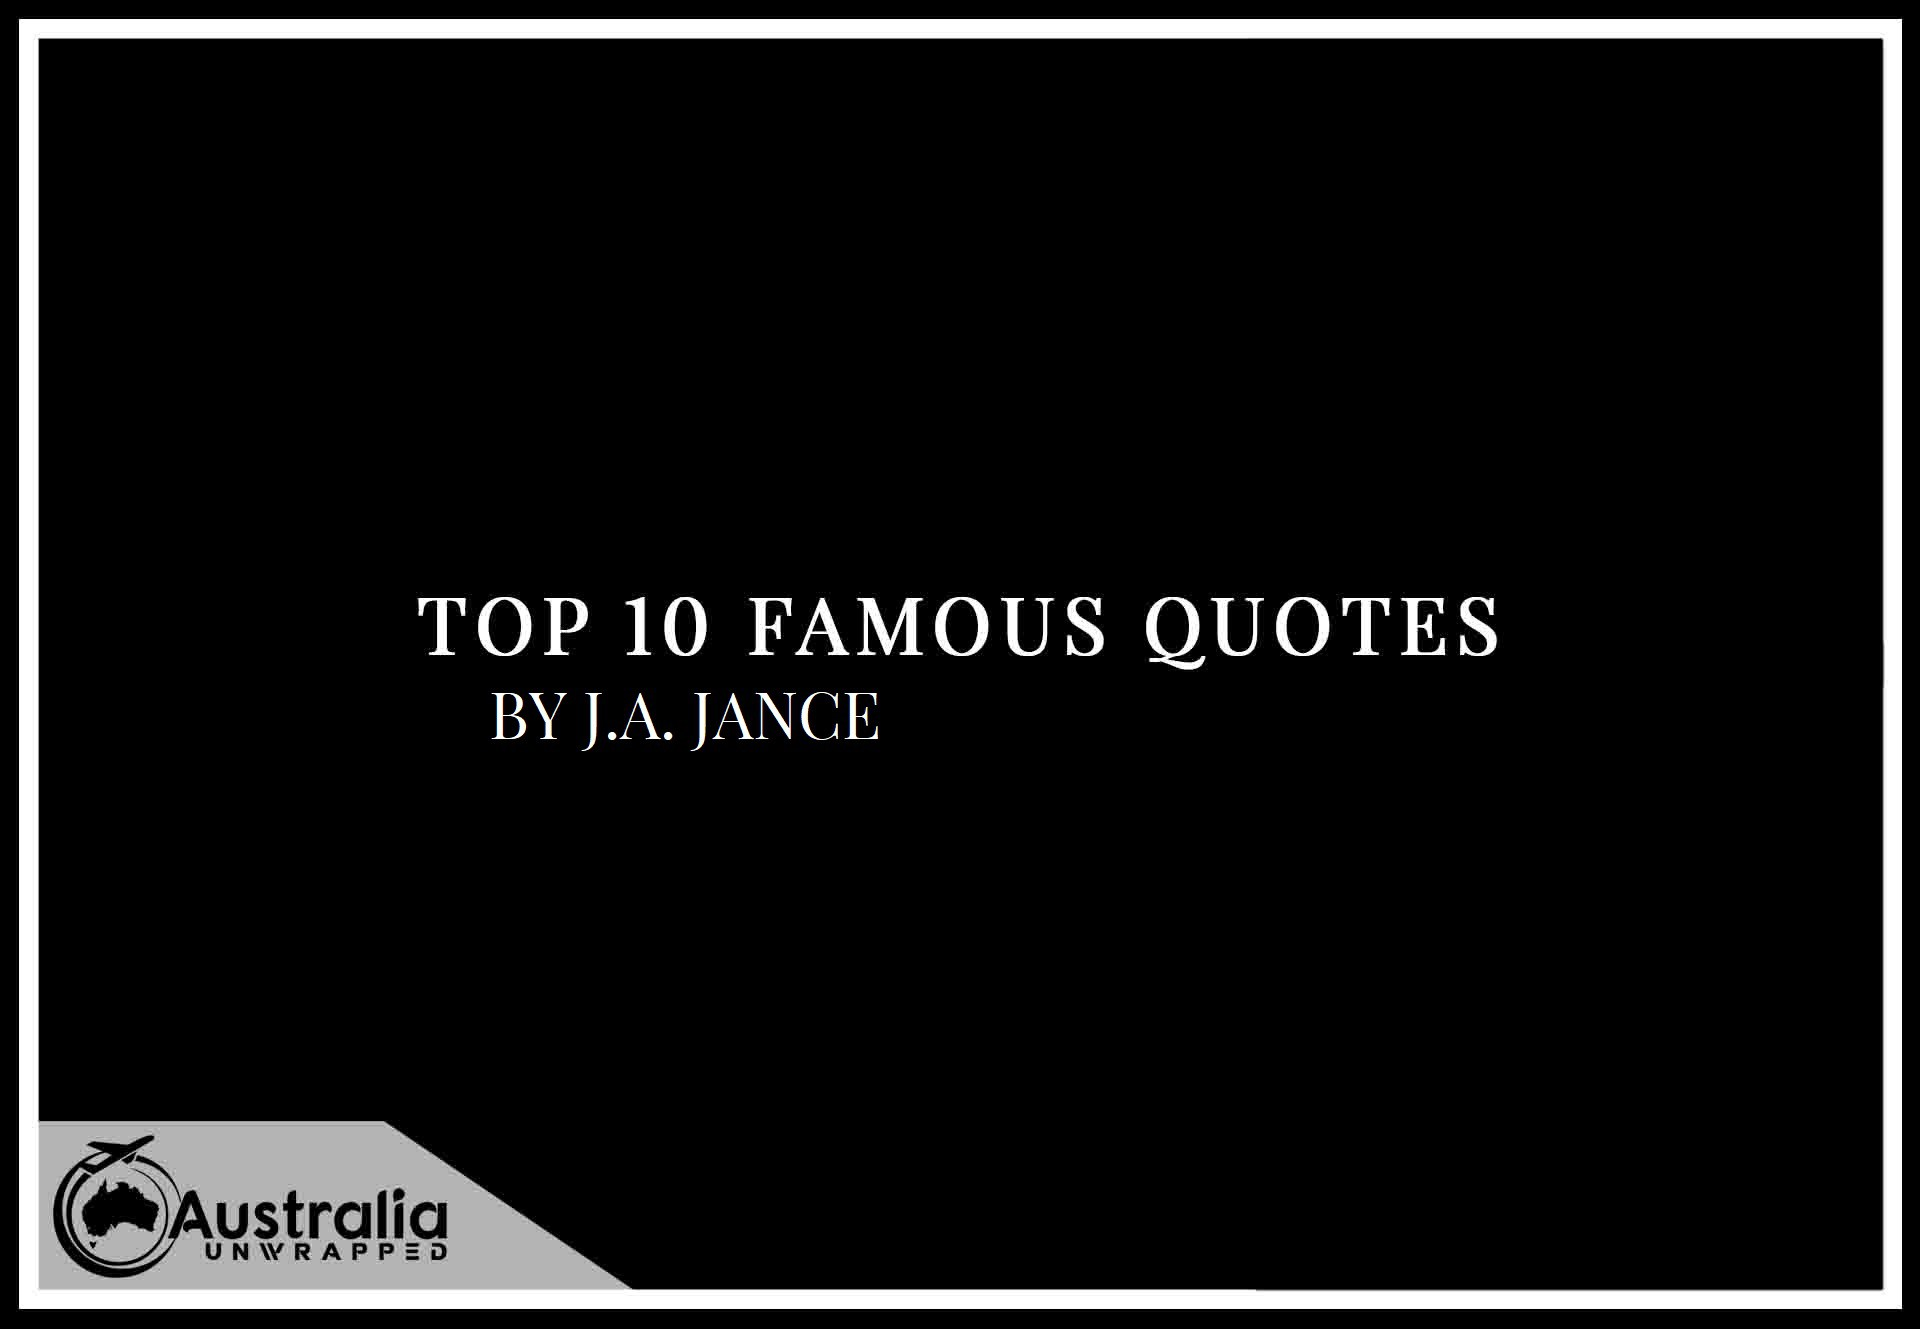 Top 10 Famous Quotes by Author J. A. Jance